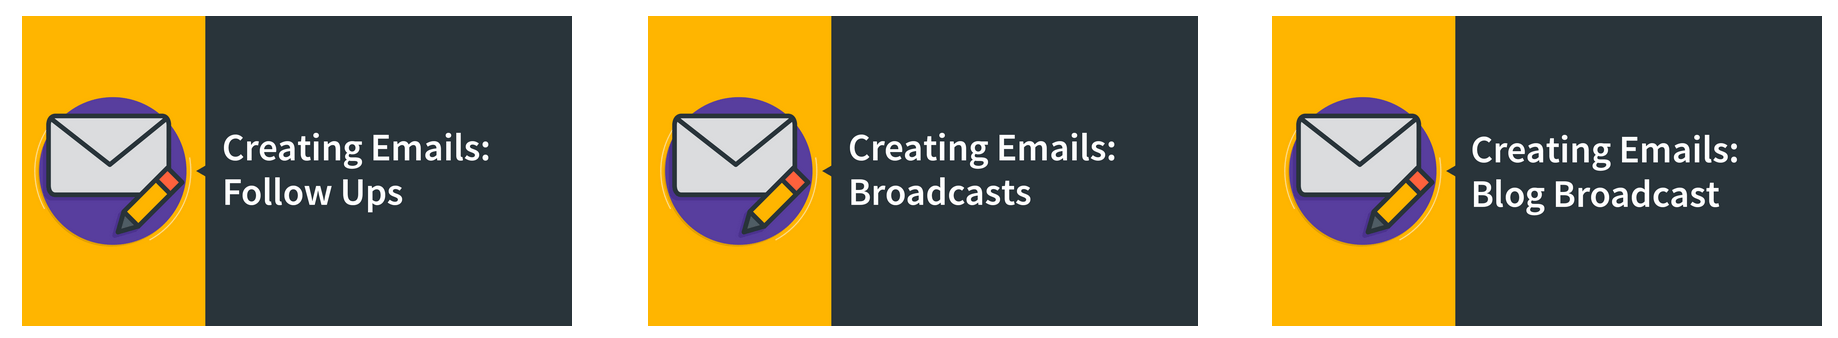 aweber-creating-emails